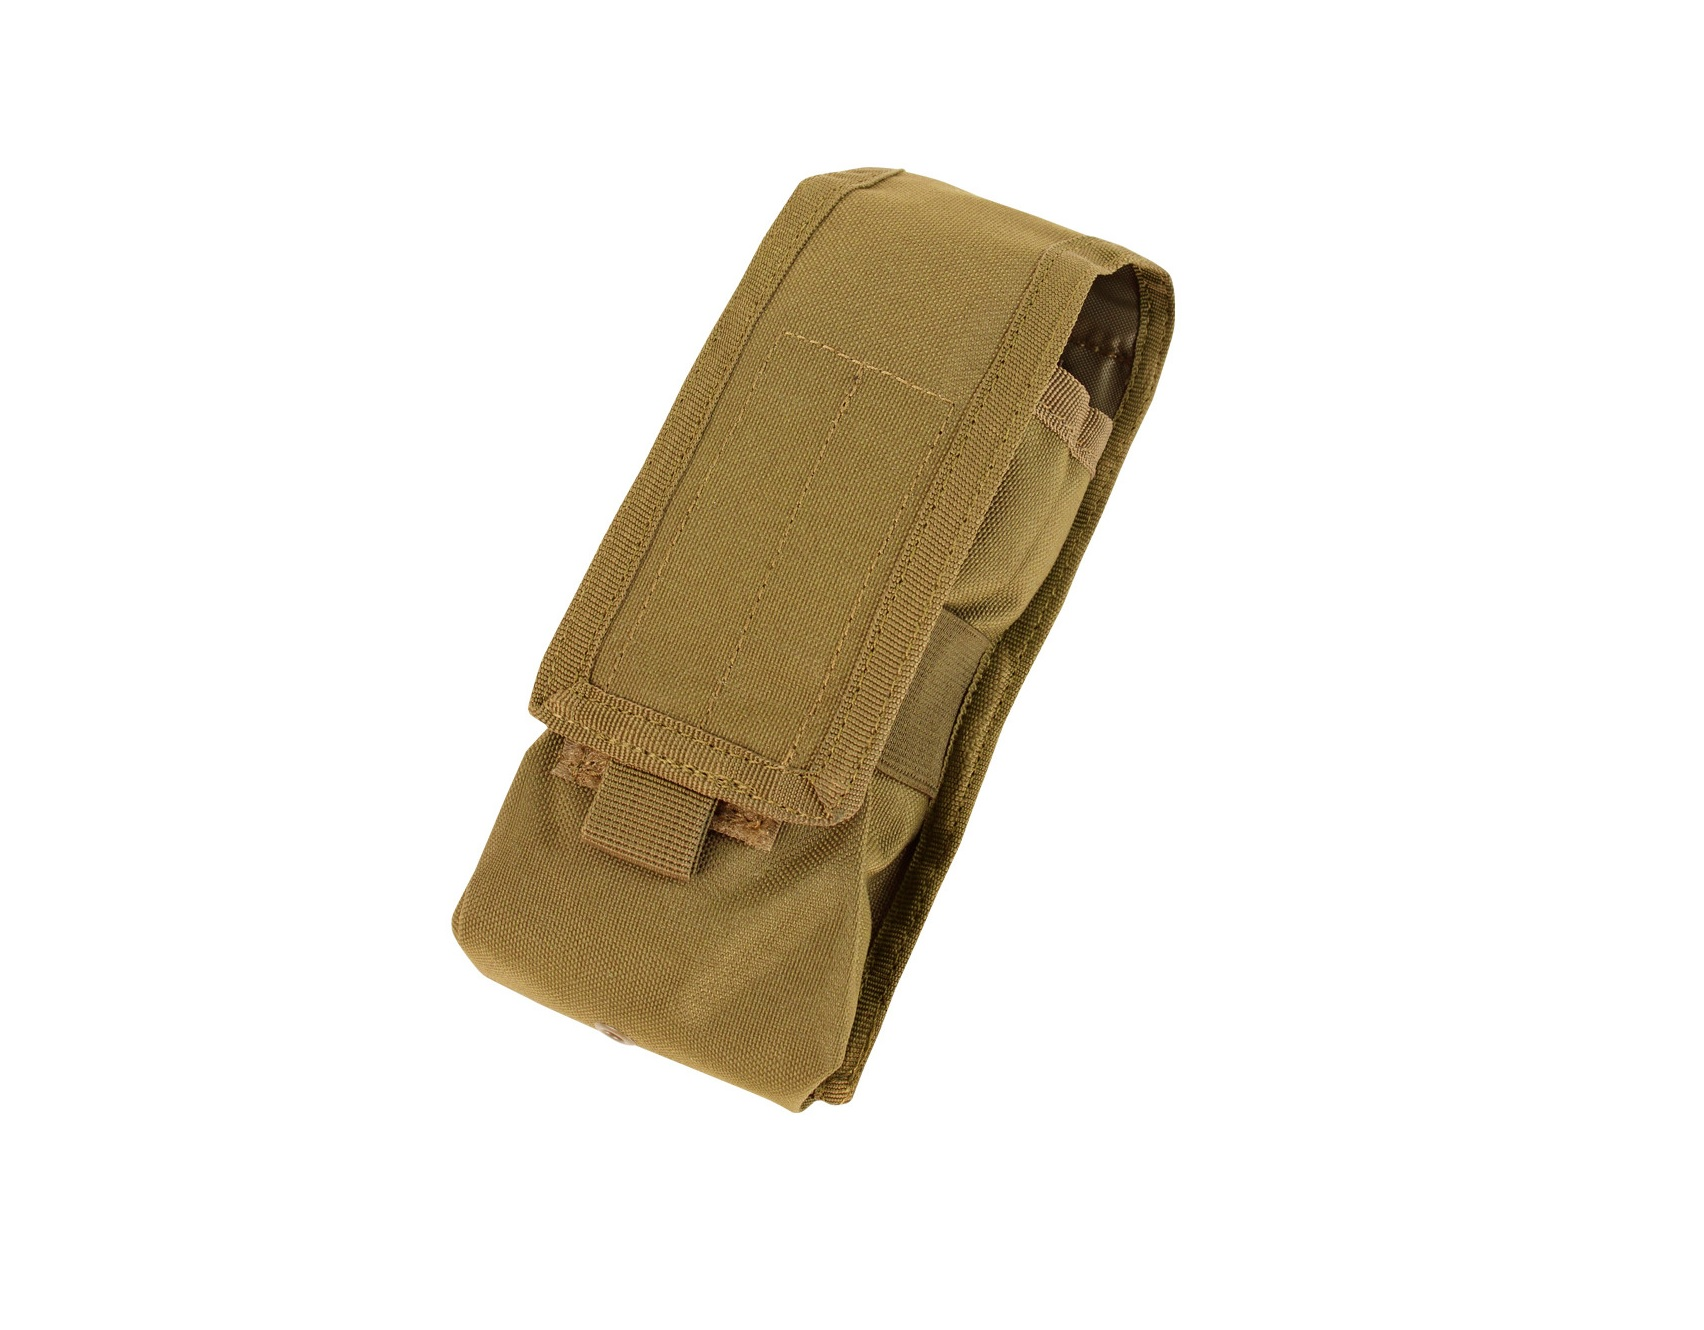 POUCH RADIO - COYOTE BROWN